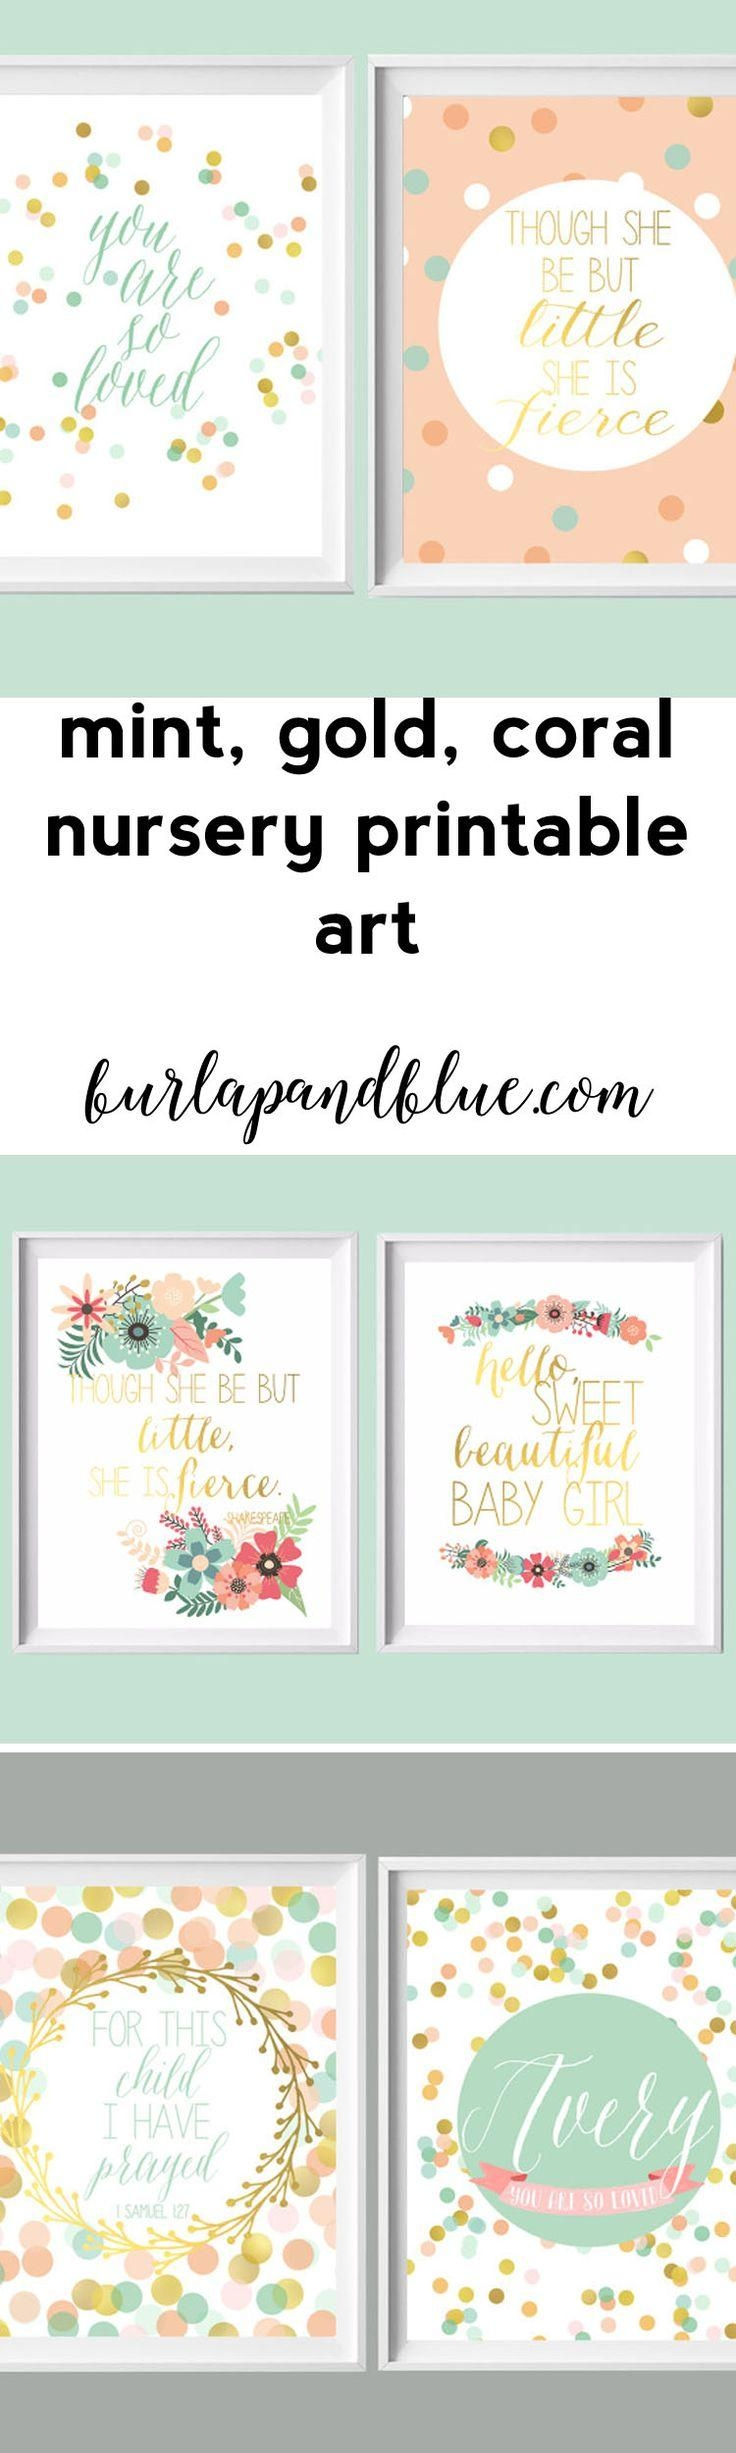 Best 25+ Nursery Wall Art Ideas Only On Pinterest | Baby Nursery In Baby Wall Art (Image 9 of 20)